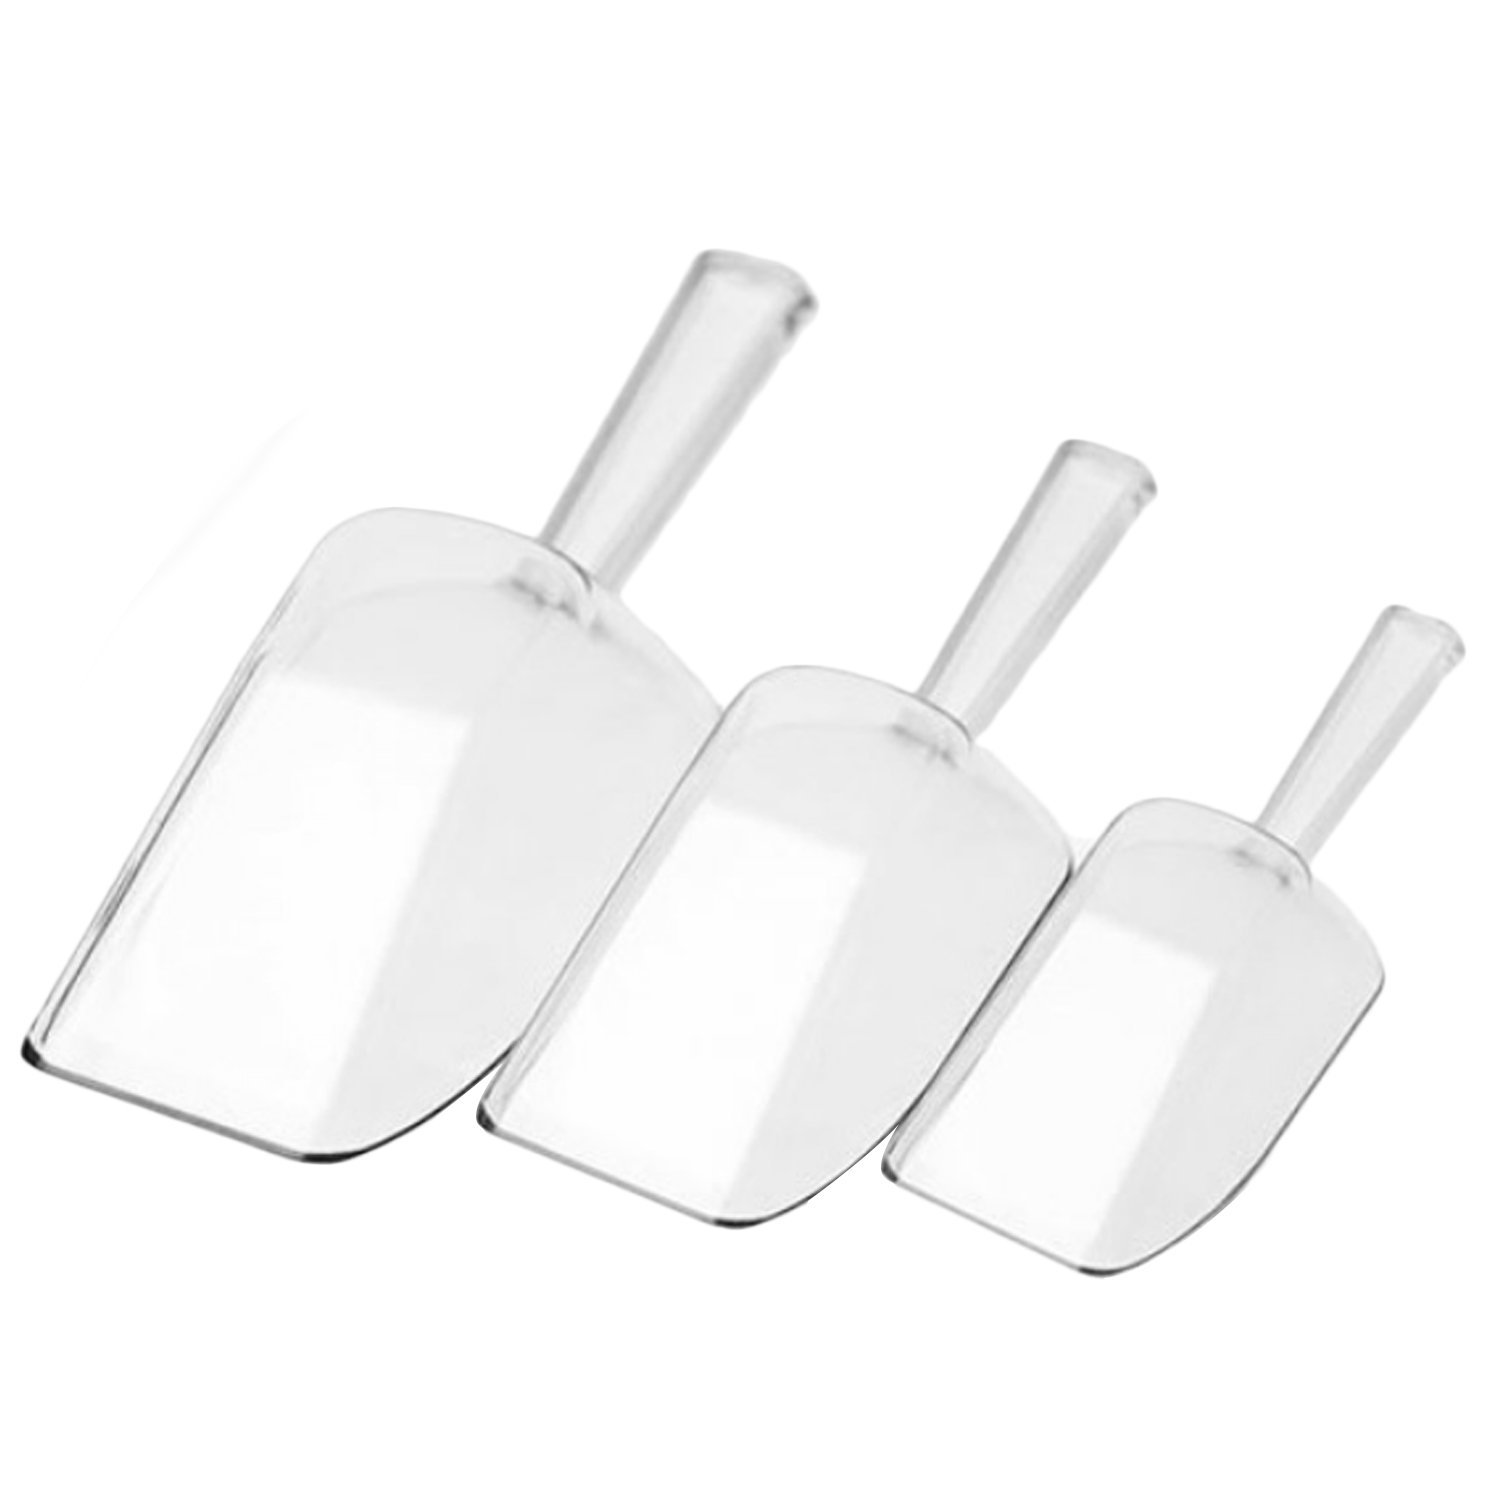 3pcs Clear Plastic Kitchen Food Scoops Ice Scraper Shovel Bar Tools Accessories for Candy Flour Buffet Wedding Party Favor Migavan